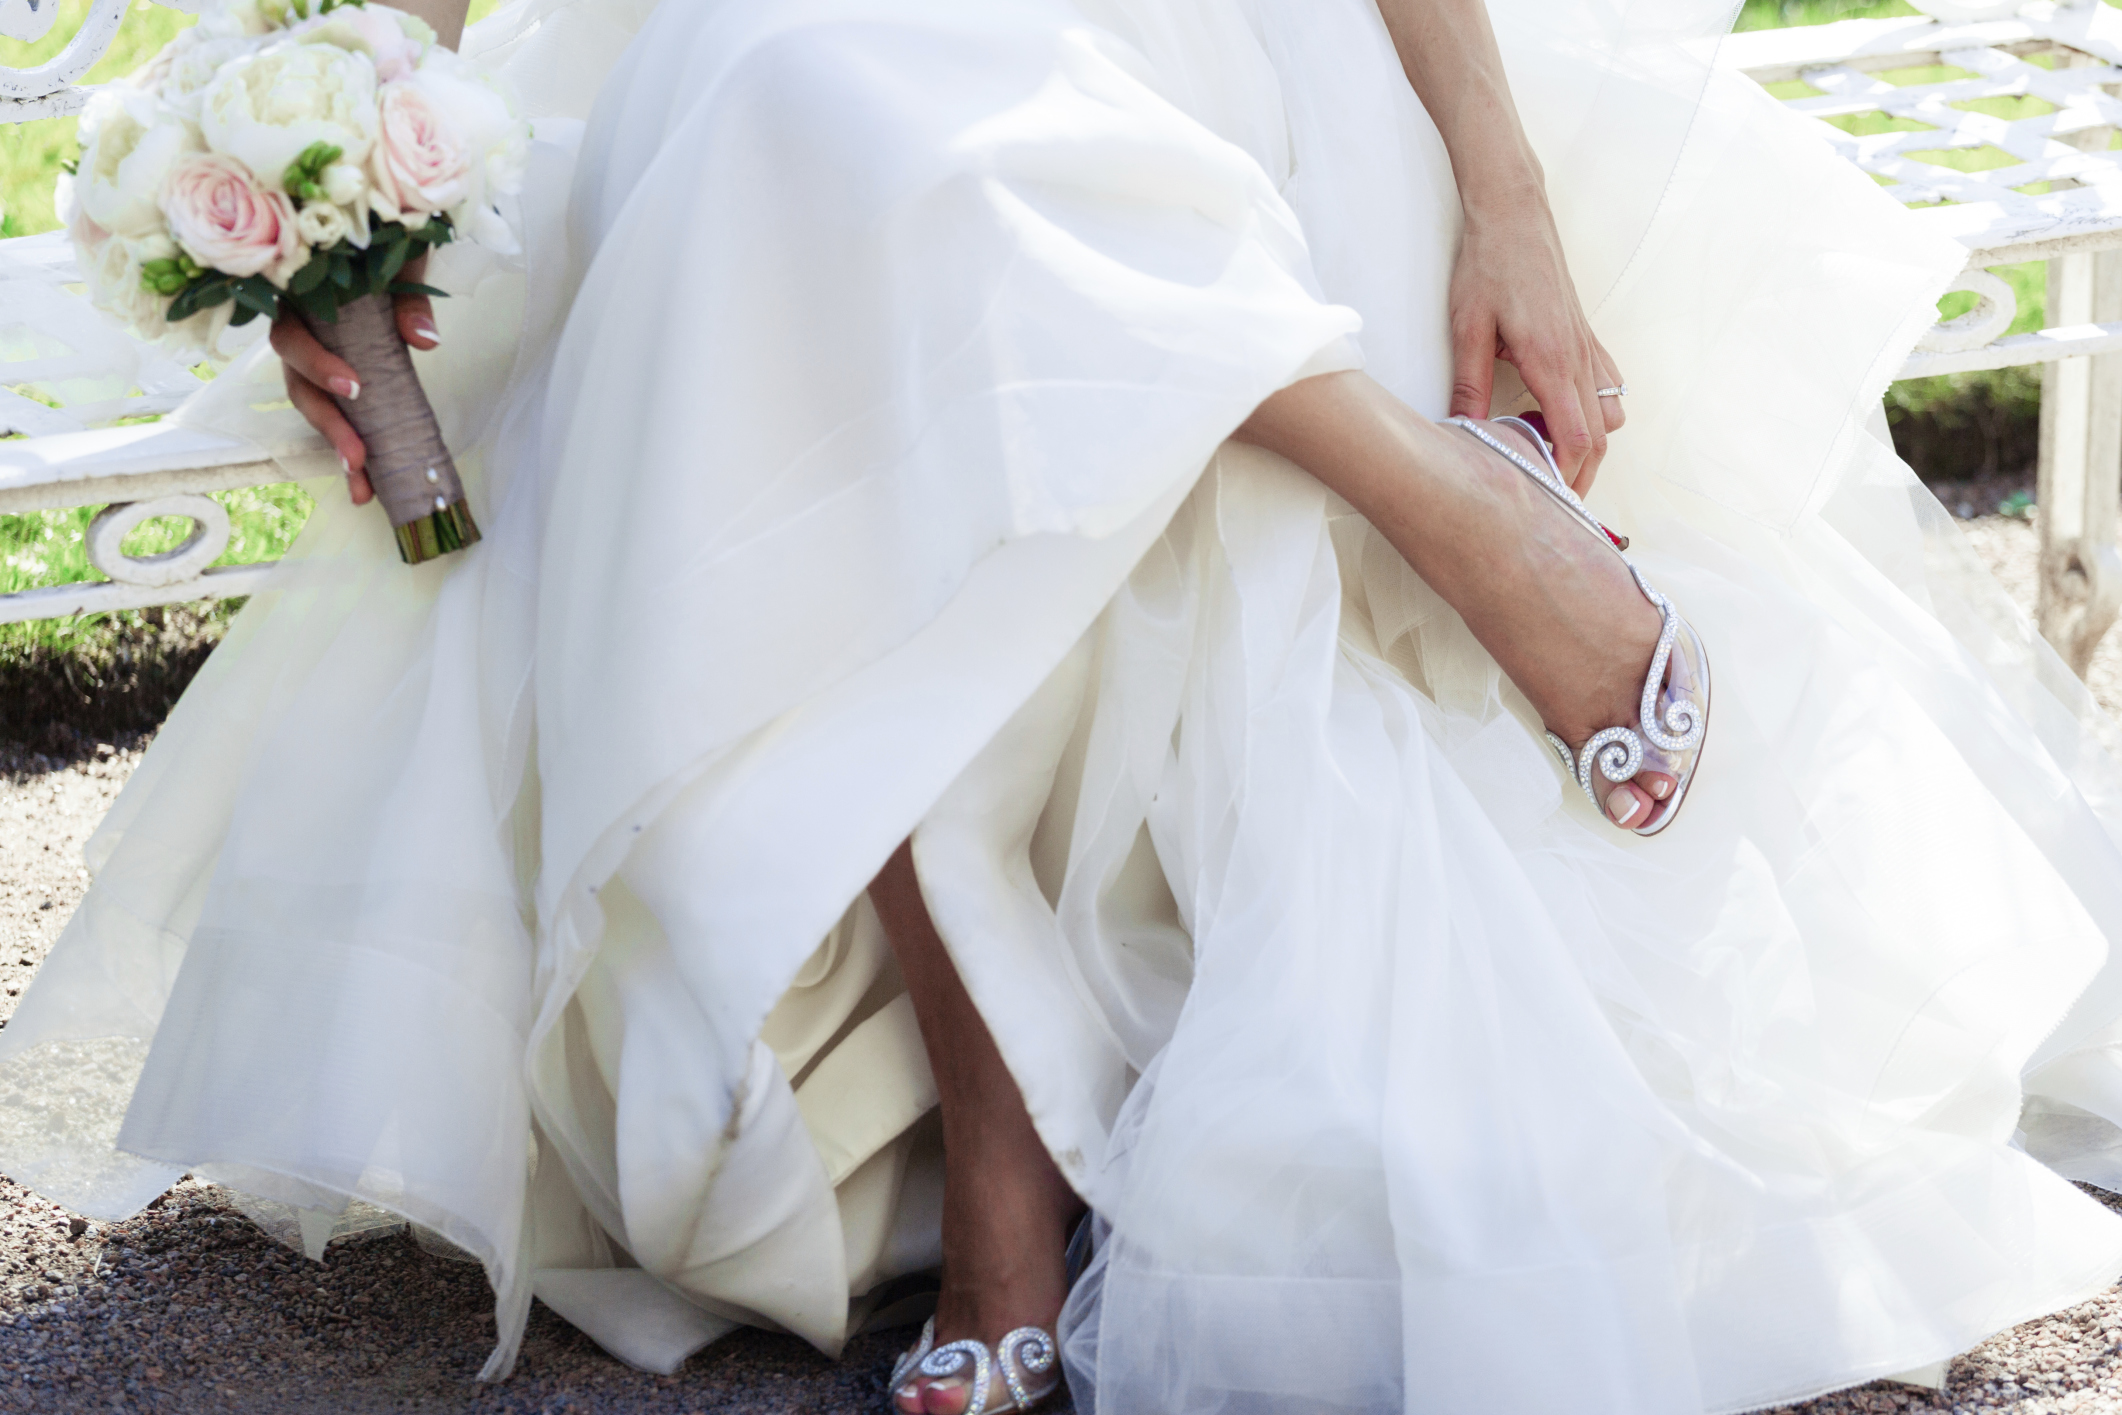 shoes for wedding gown photo - 1